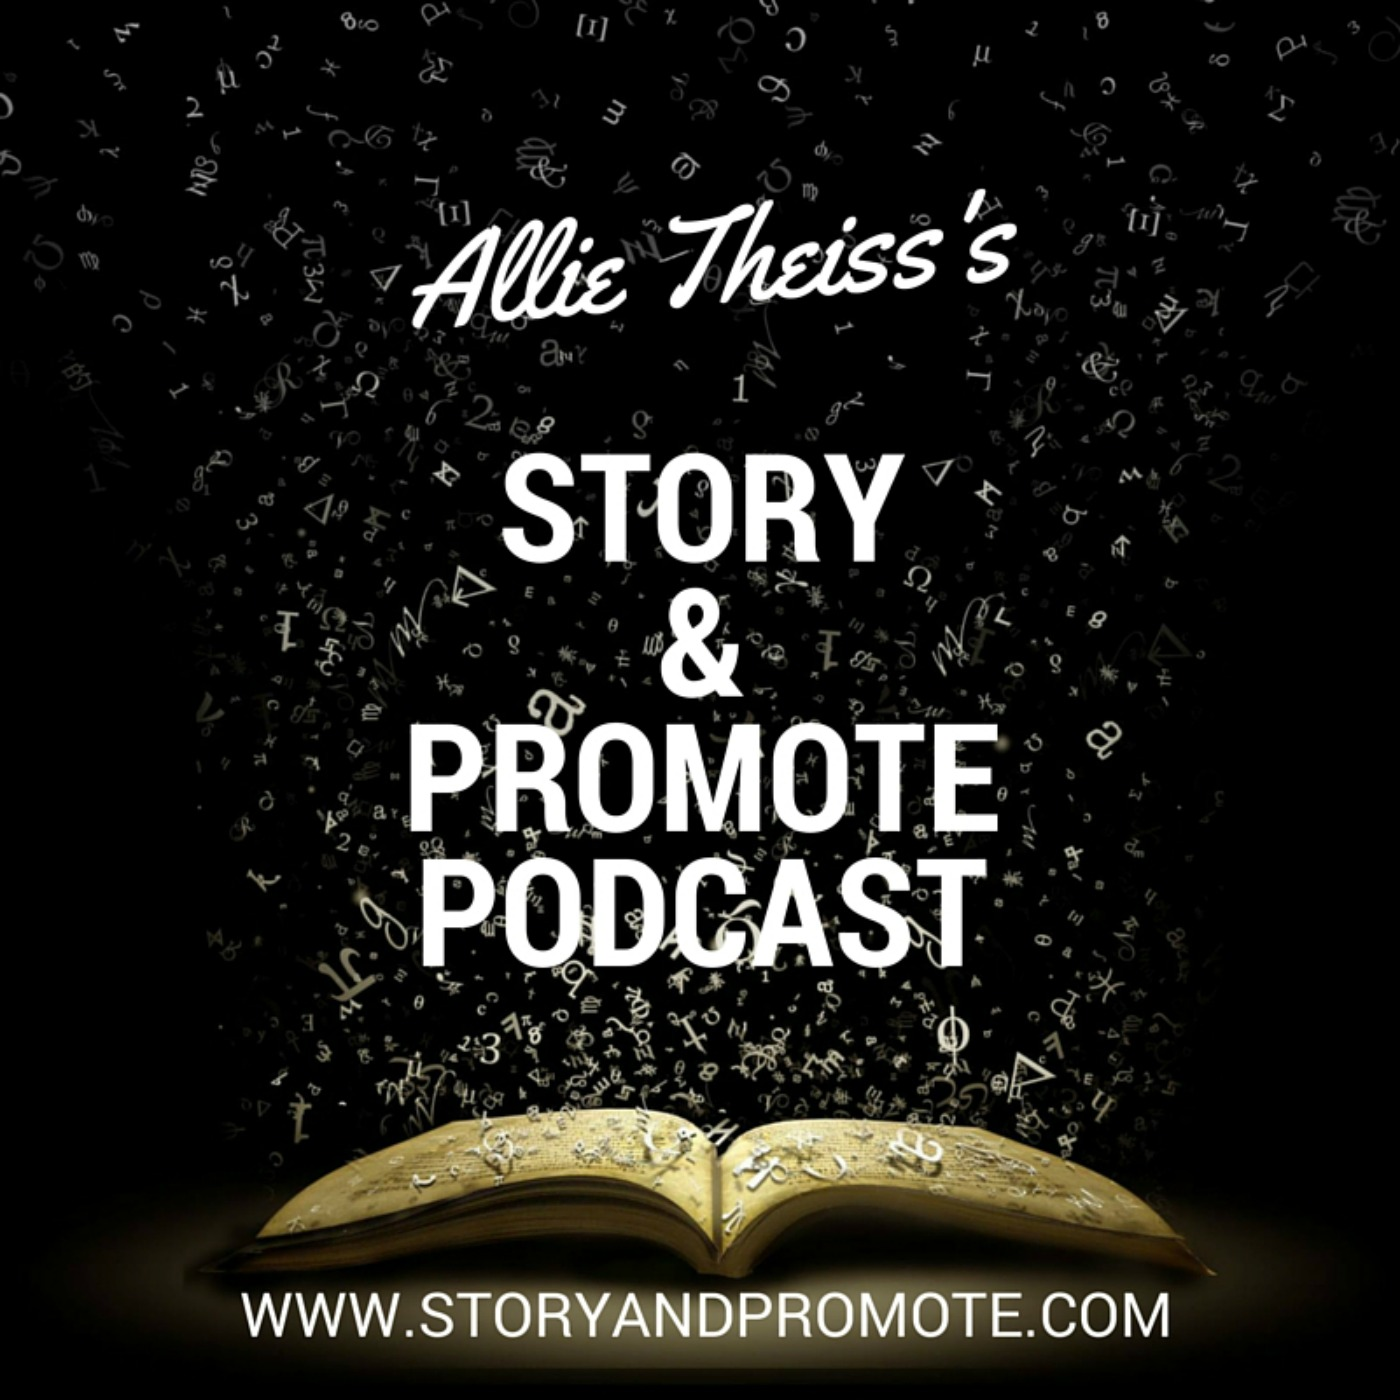 Story and Promote Podcast: Beginnings & Endings